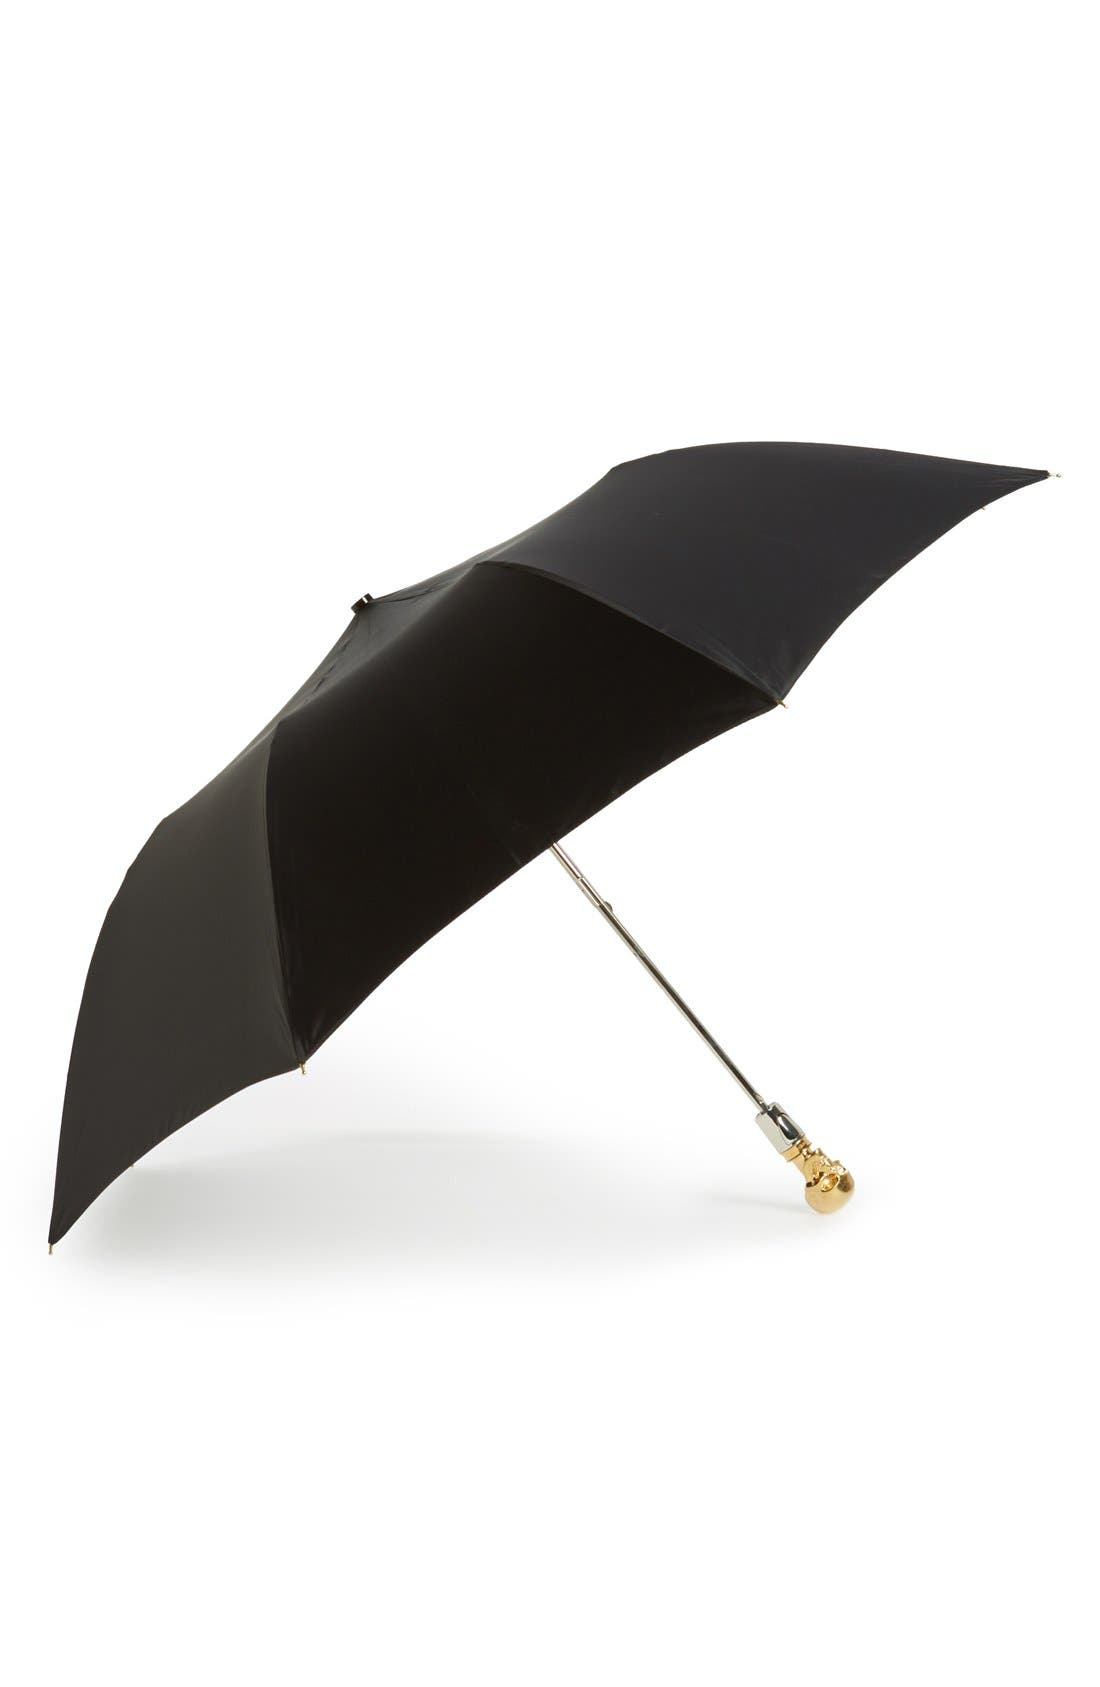 Alternate Image 1 Selected - Alexander McQueen Skull Umbrella